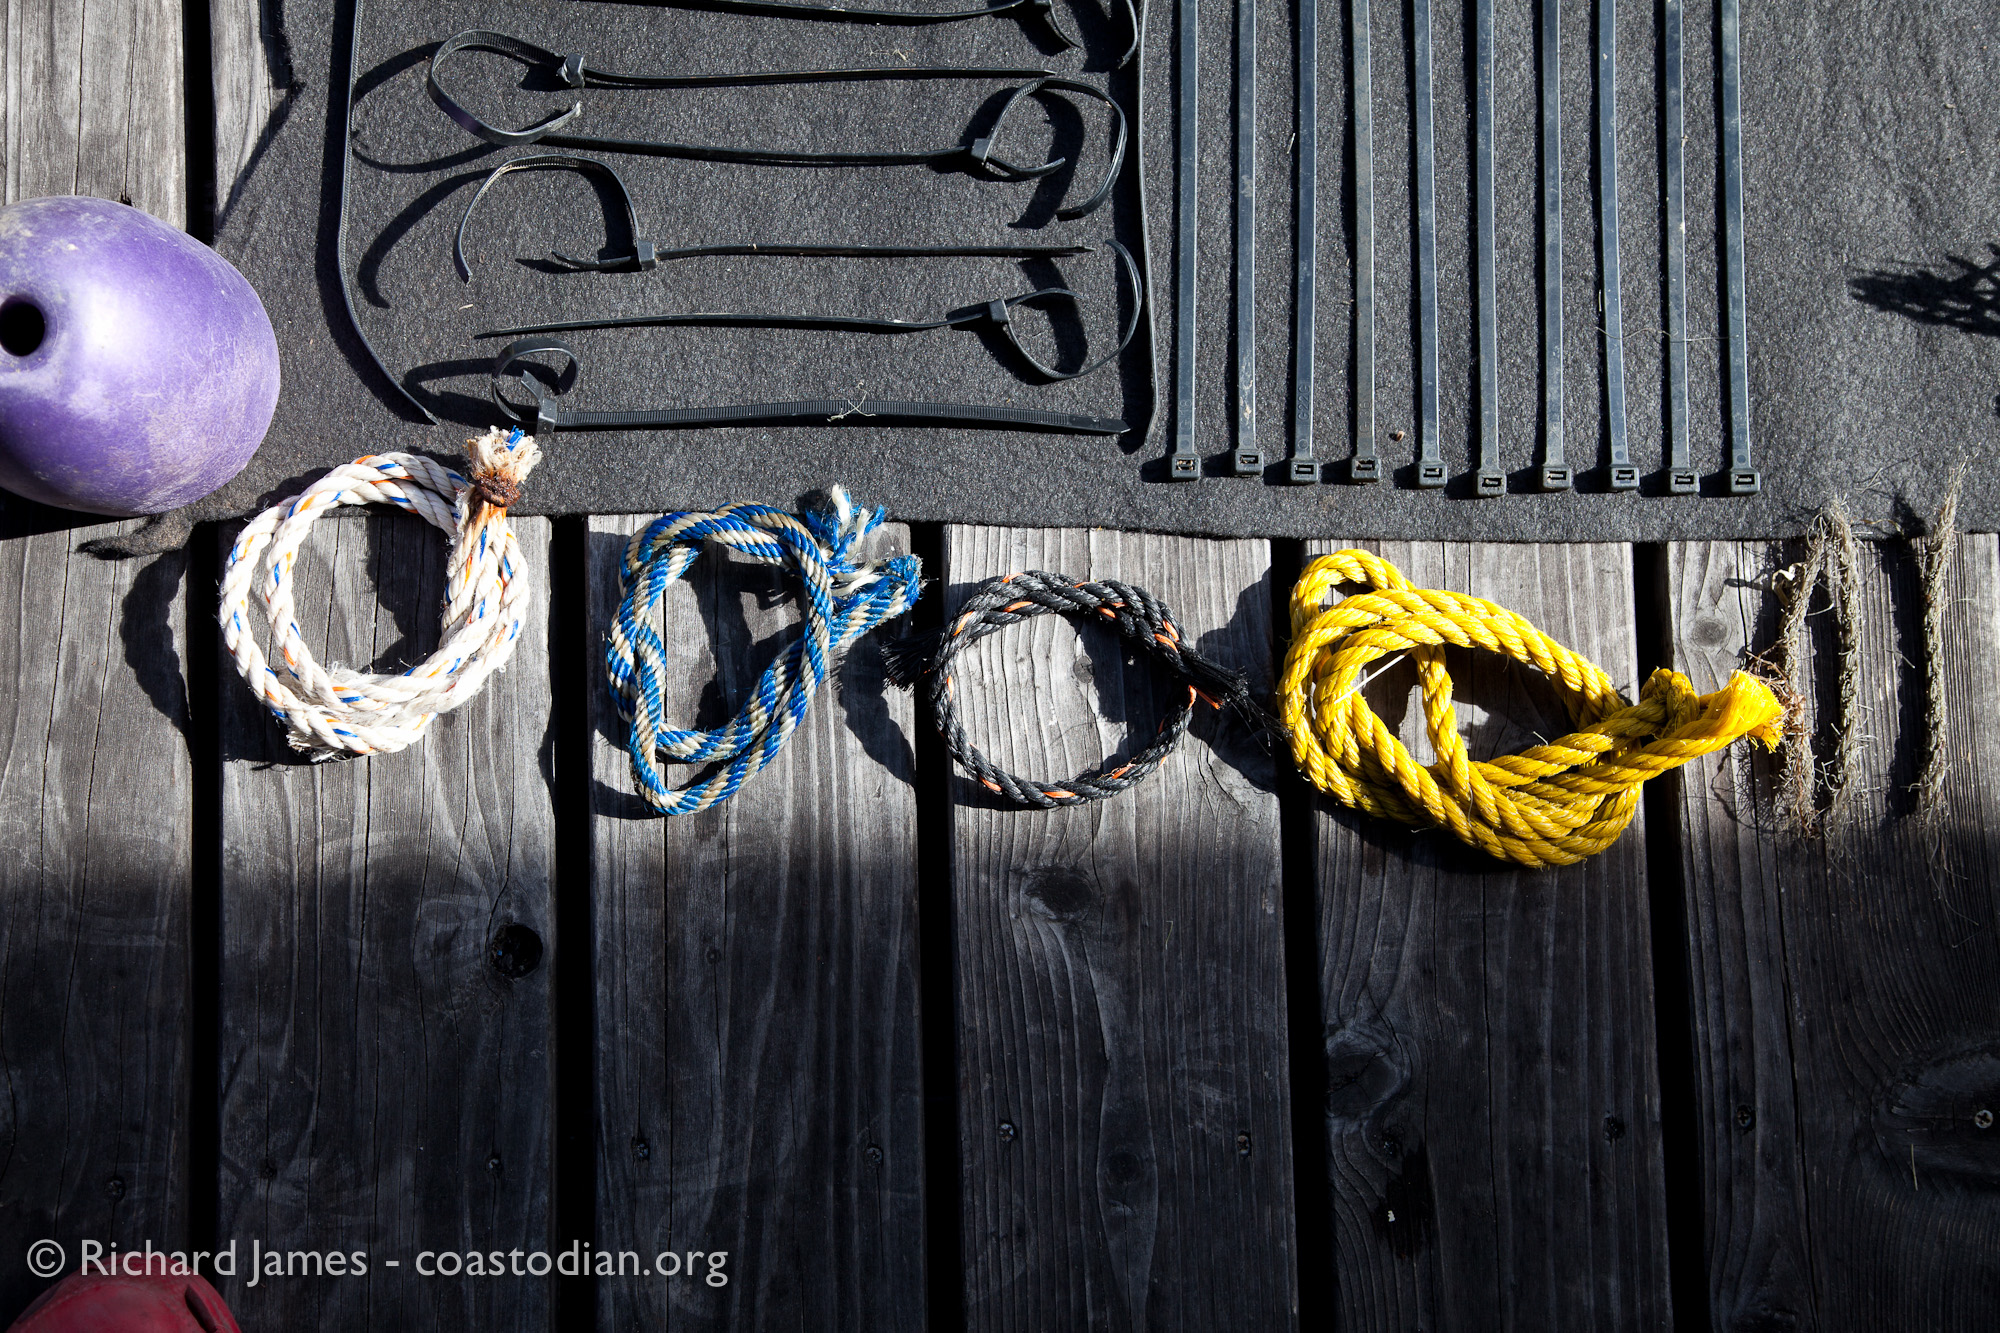 ©Richard James - coastodian.org Abandoned zip-ties & rope remnants, float collected on shore adjacent to Hog Island Oysters lease M-430-15 on 22 March, 2015